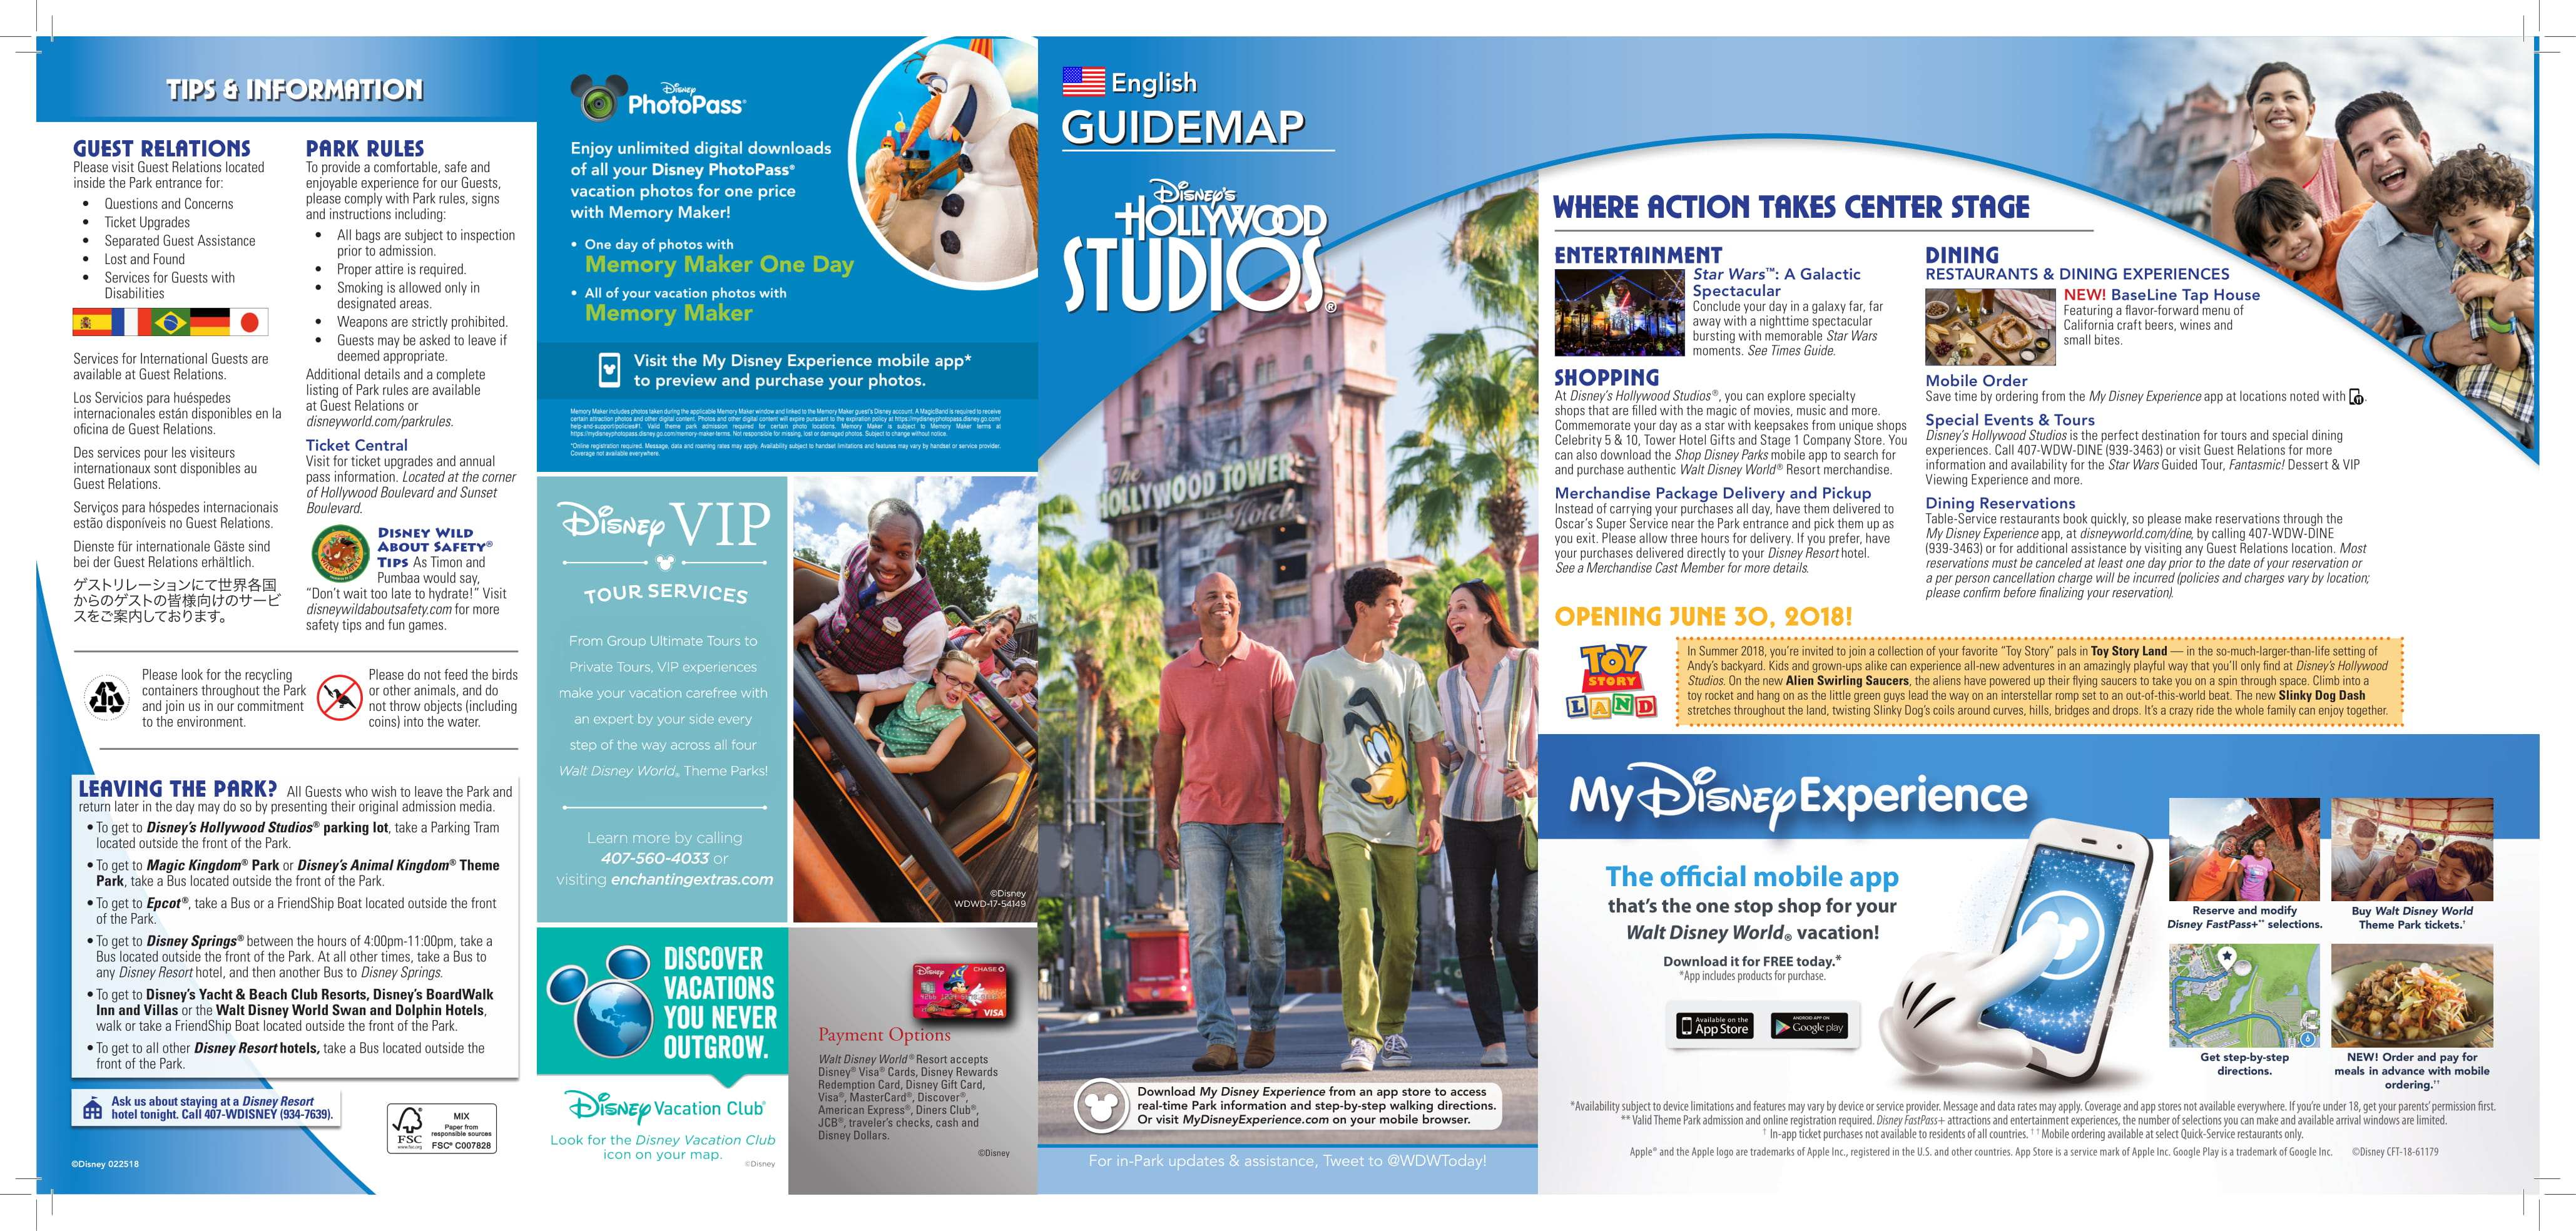 Disney's Hollywood Studios Guide Map with Toy Story Land Opening Date